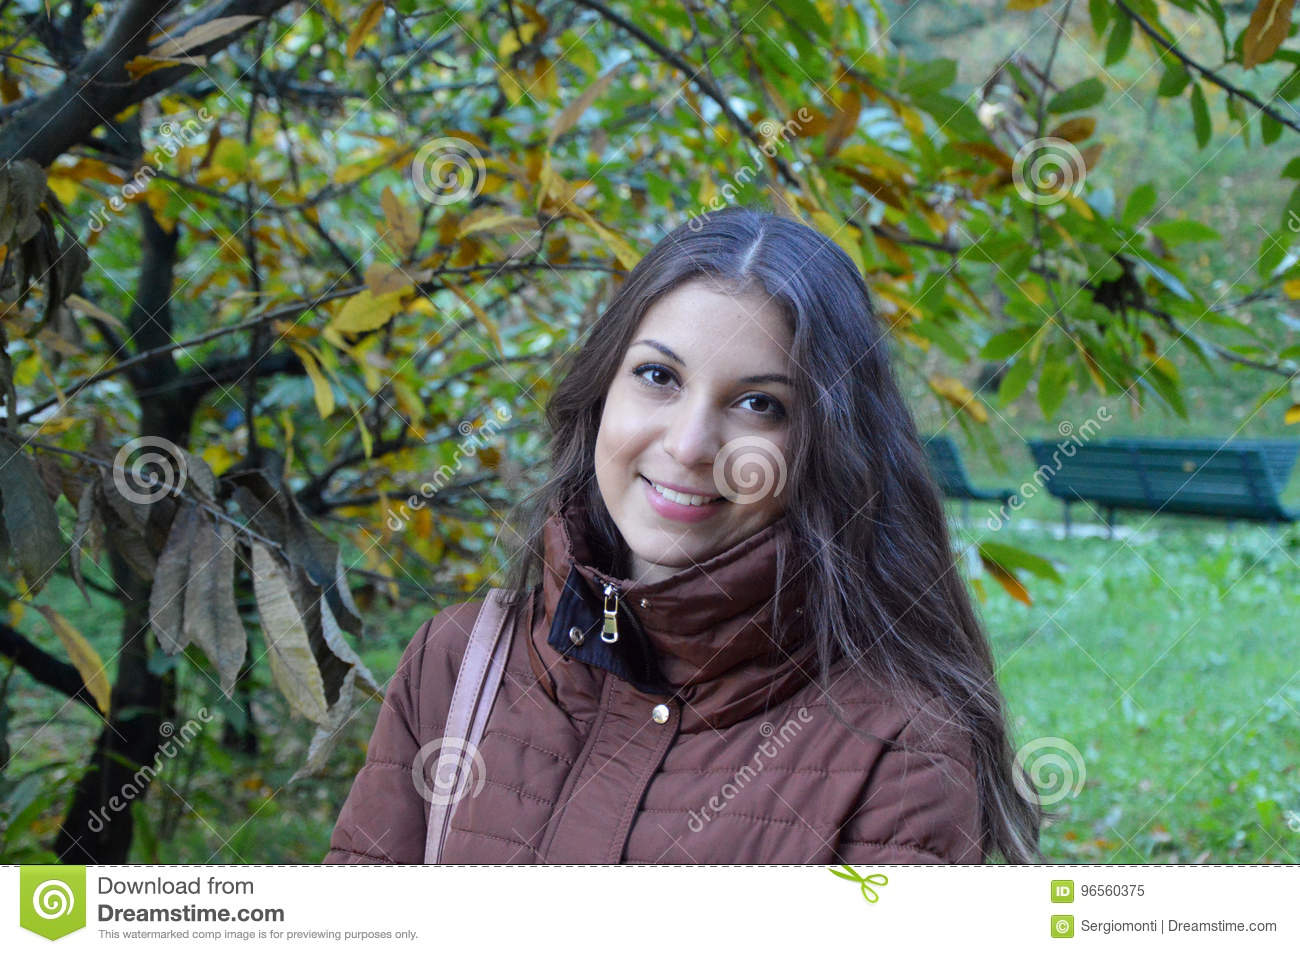 Picture of beautiful happy young woman wearing coat smiling over nature background. Smiling girl with long hair looking at camera.